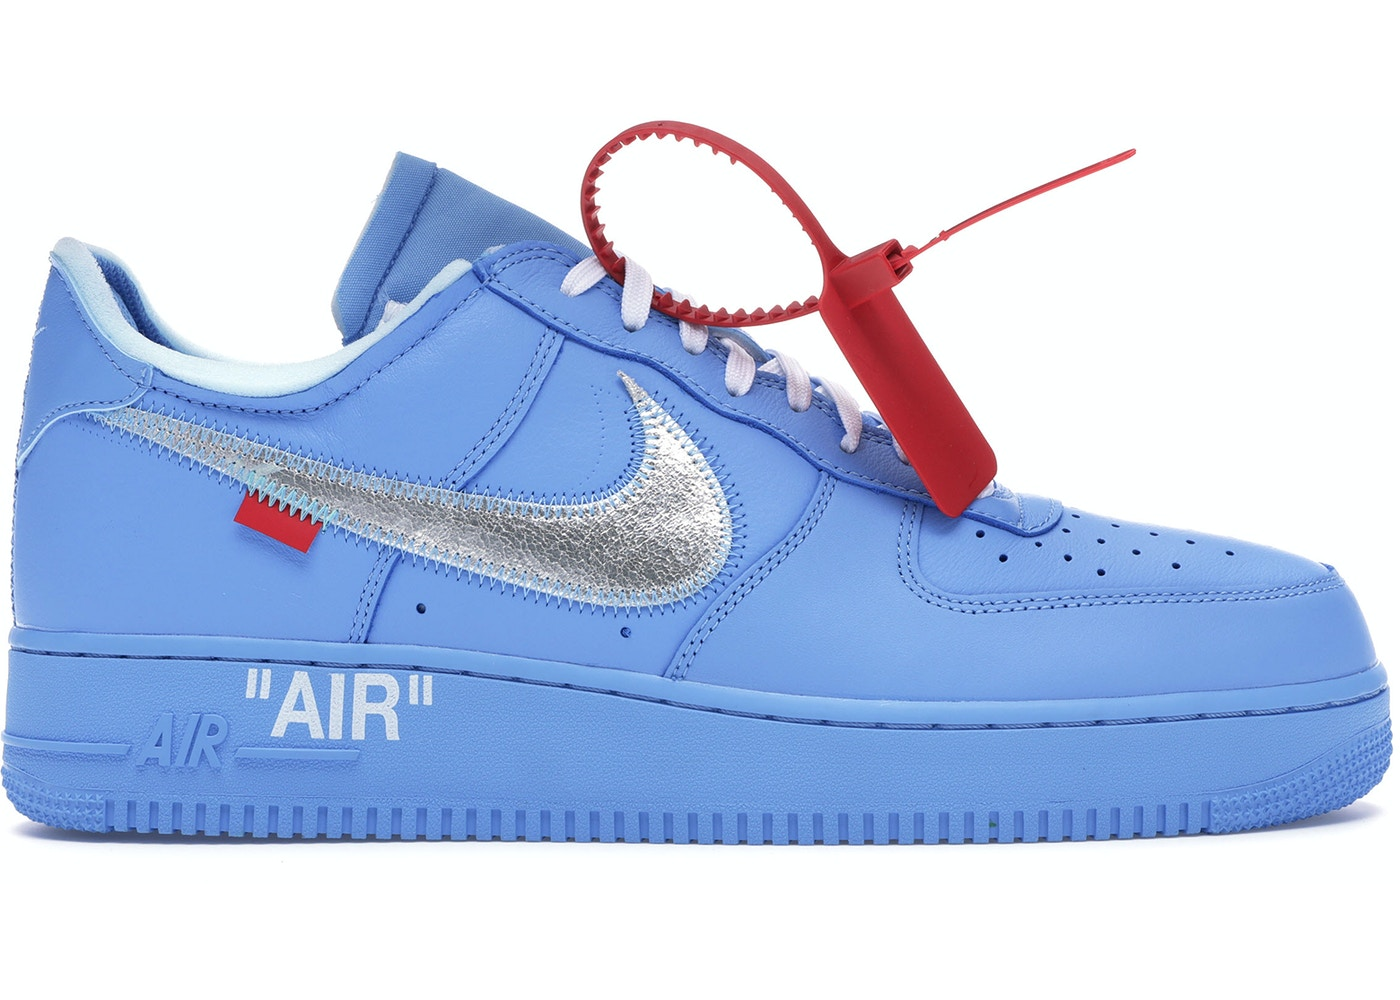 b91e4a17e3811 Buy Nike Air Force Shoes & Deadstock Sneakers